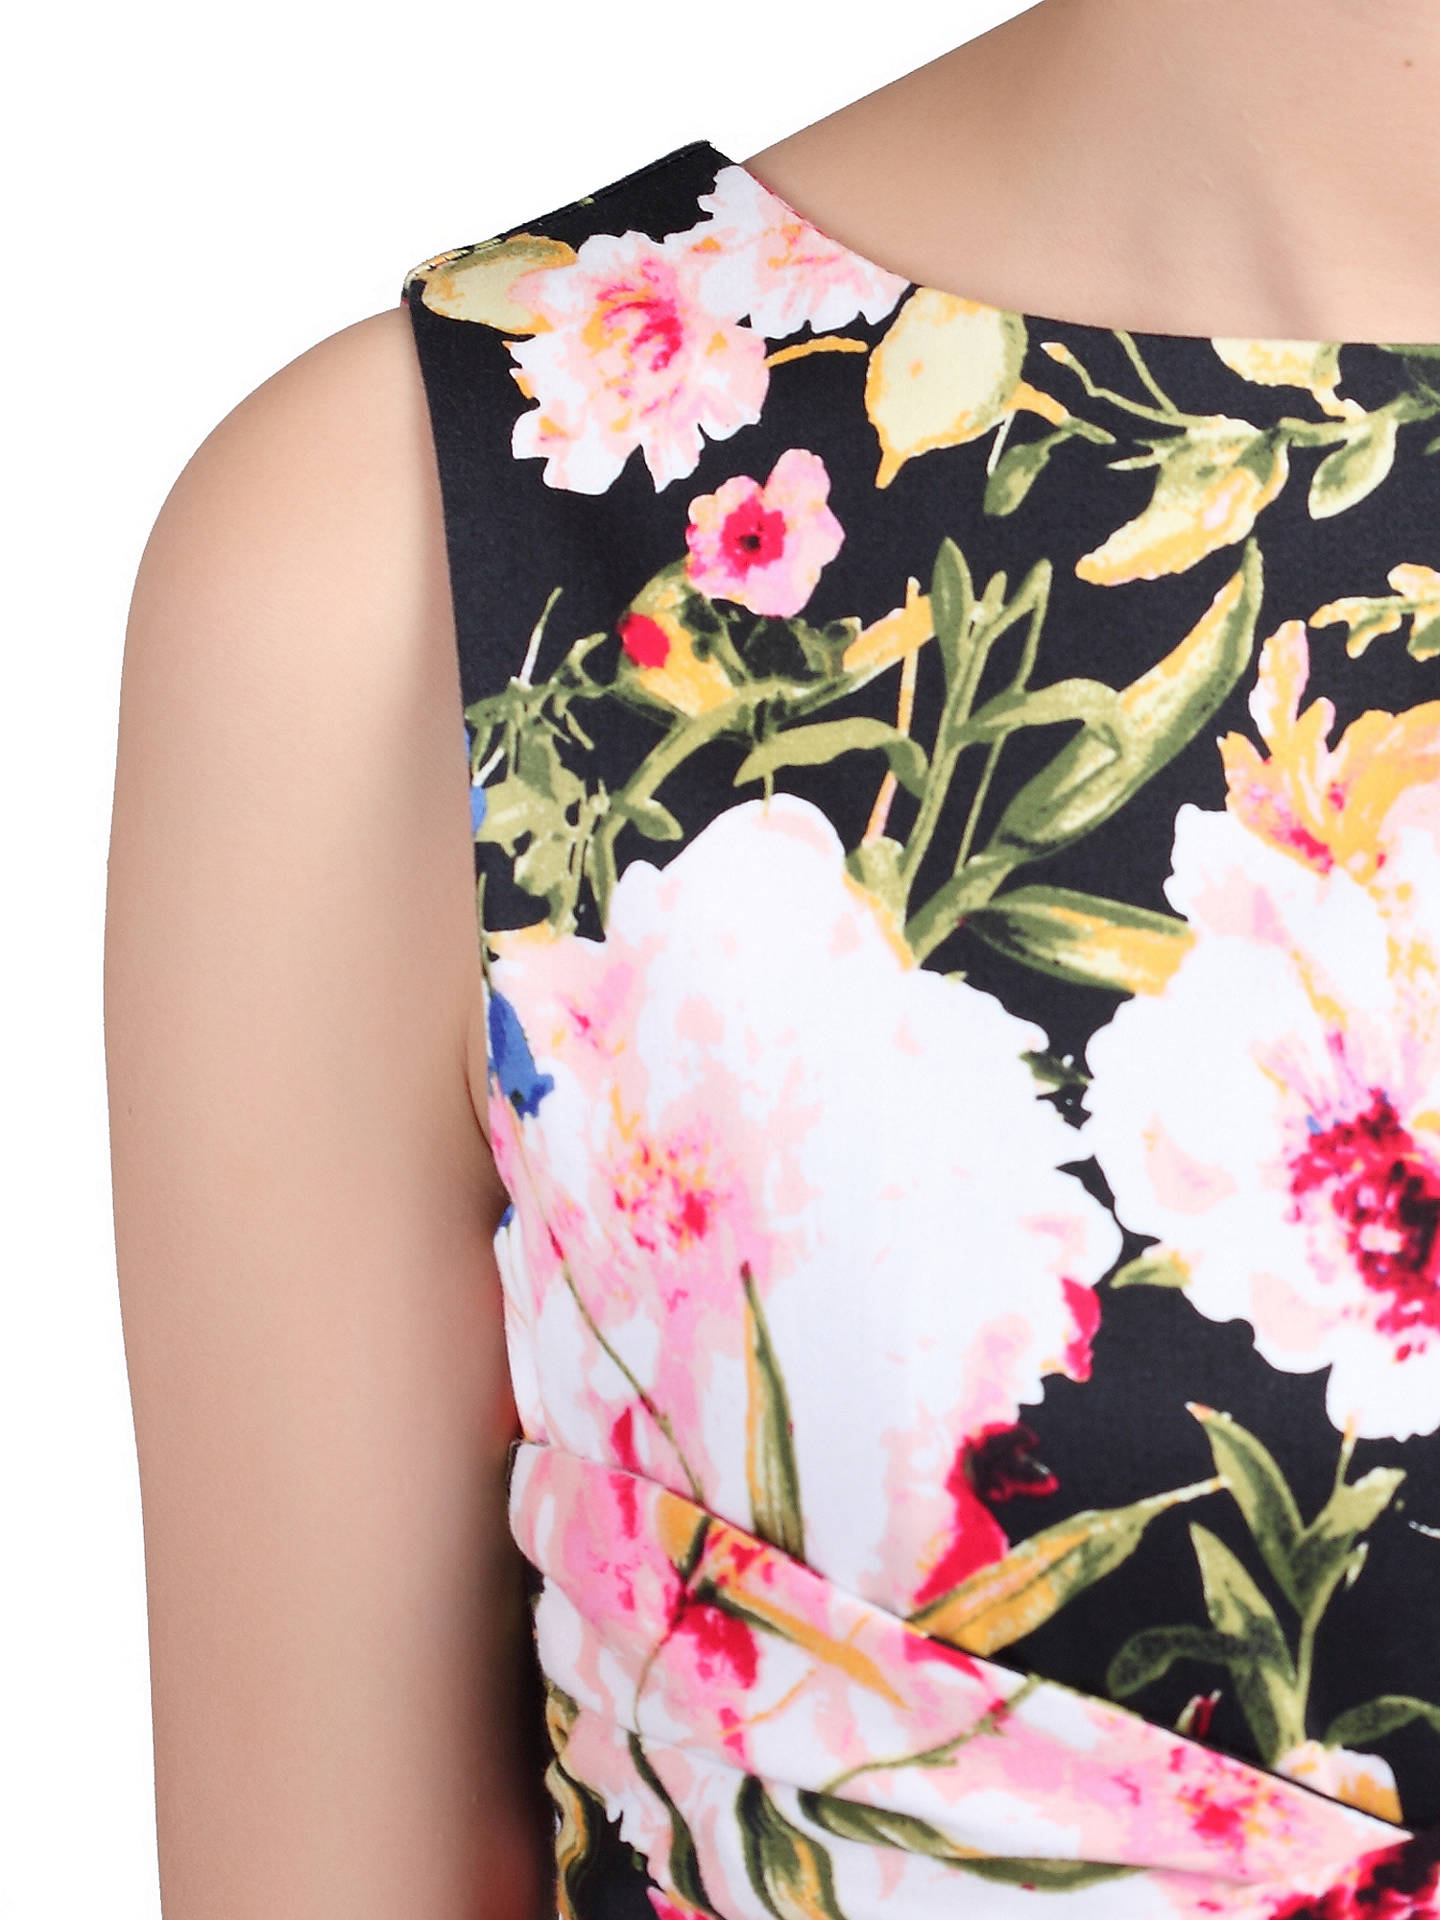 BuyJolie Moi Floral Print Crossover Dress, Black/Multi, 8 Online at johnlewis.com